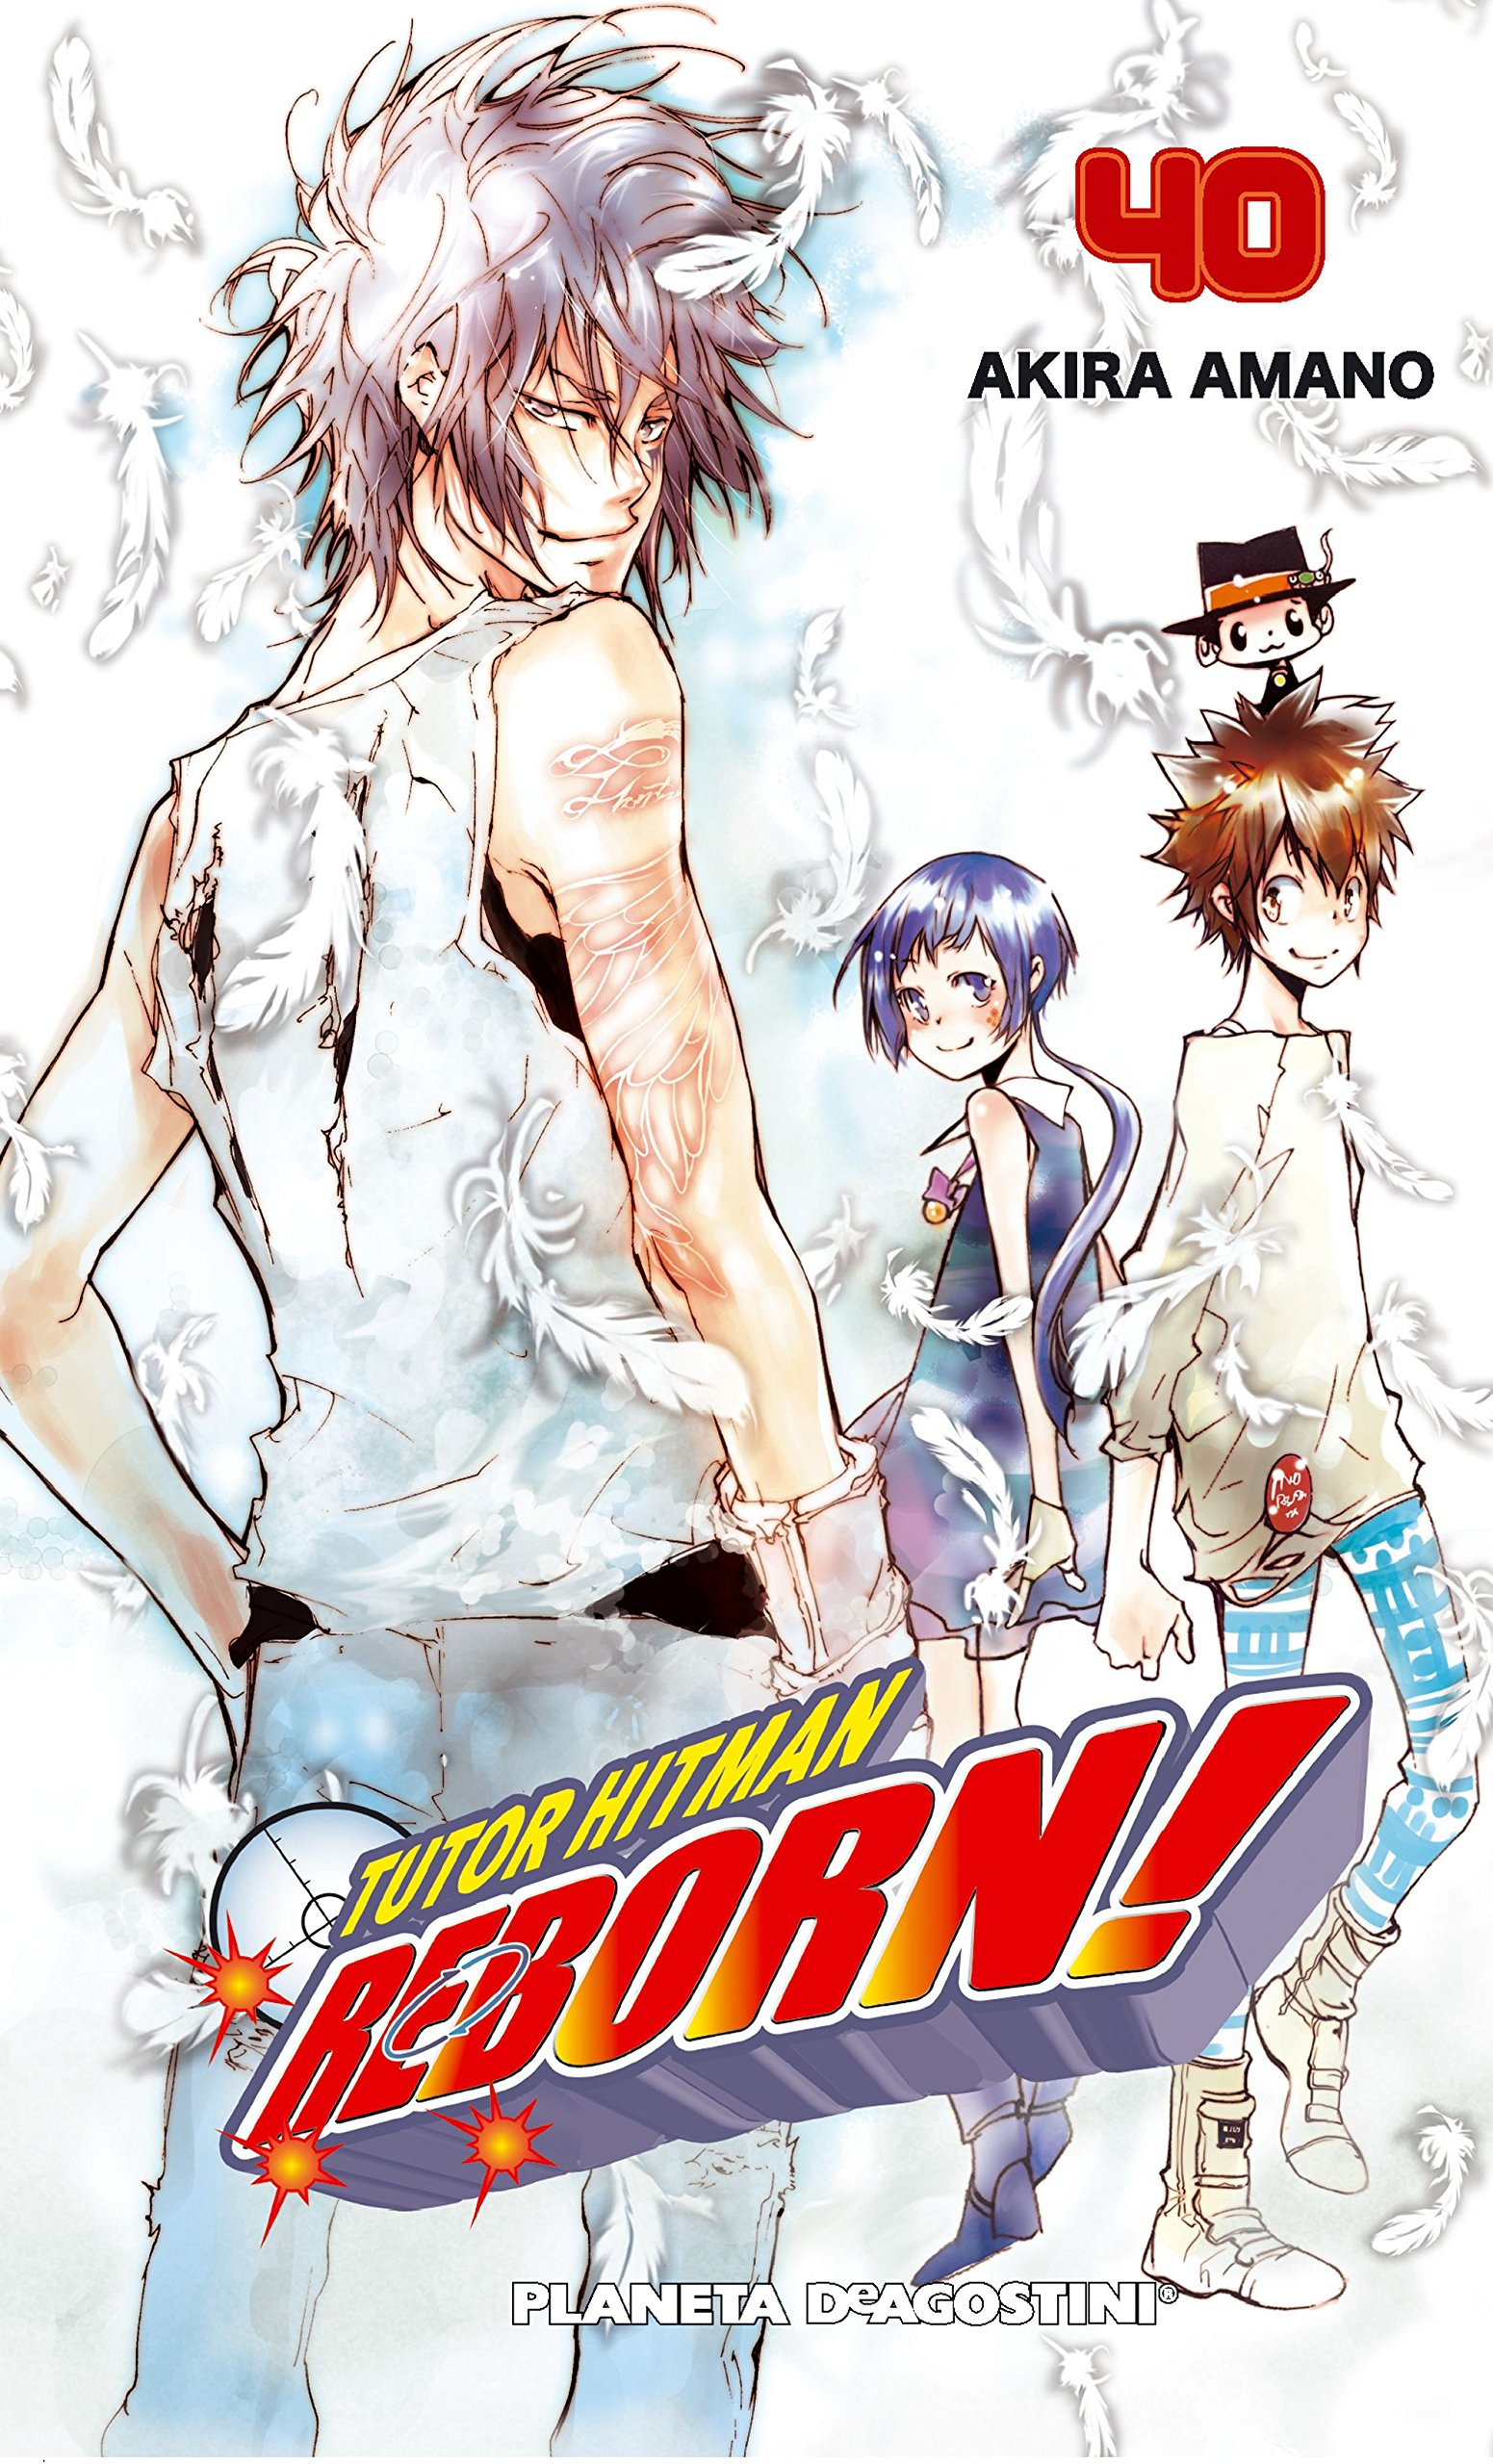 Tutor Hitman Reborn 40: Akira Amano: 9788468478852: Amazon.com: Books